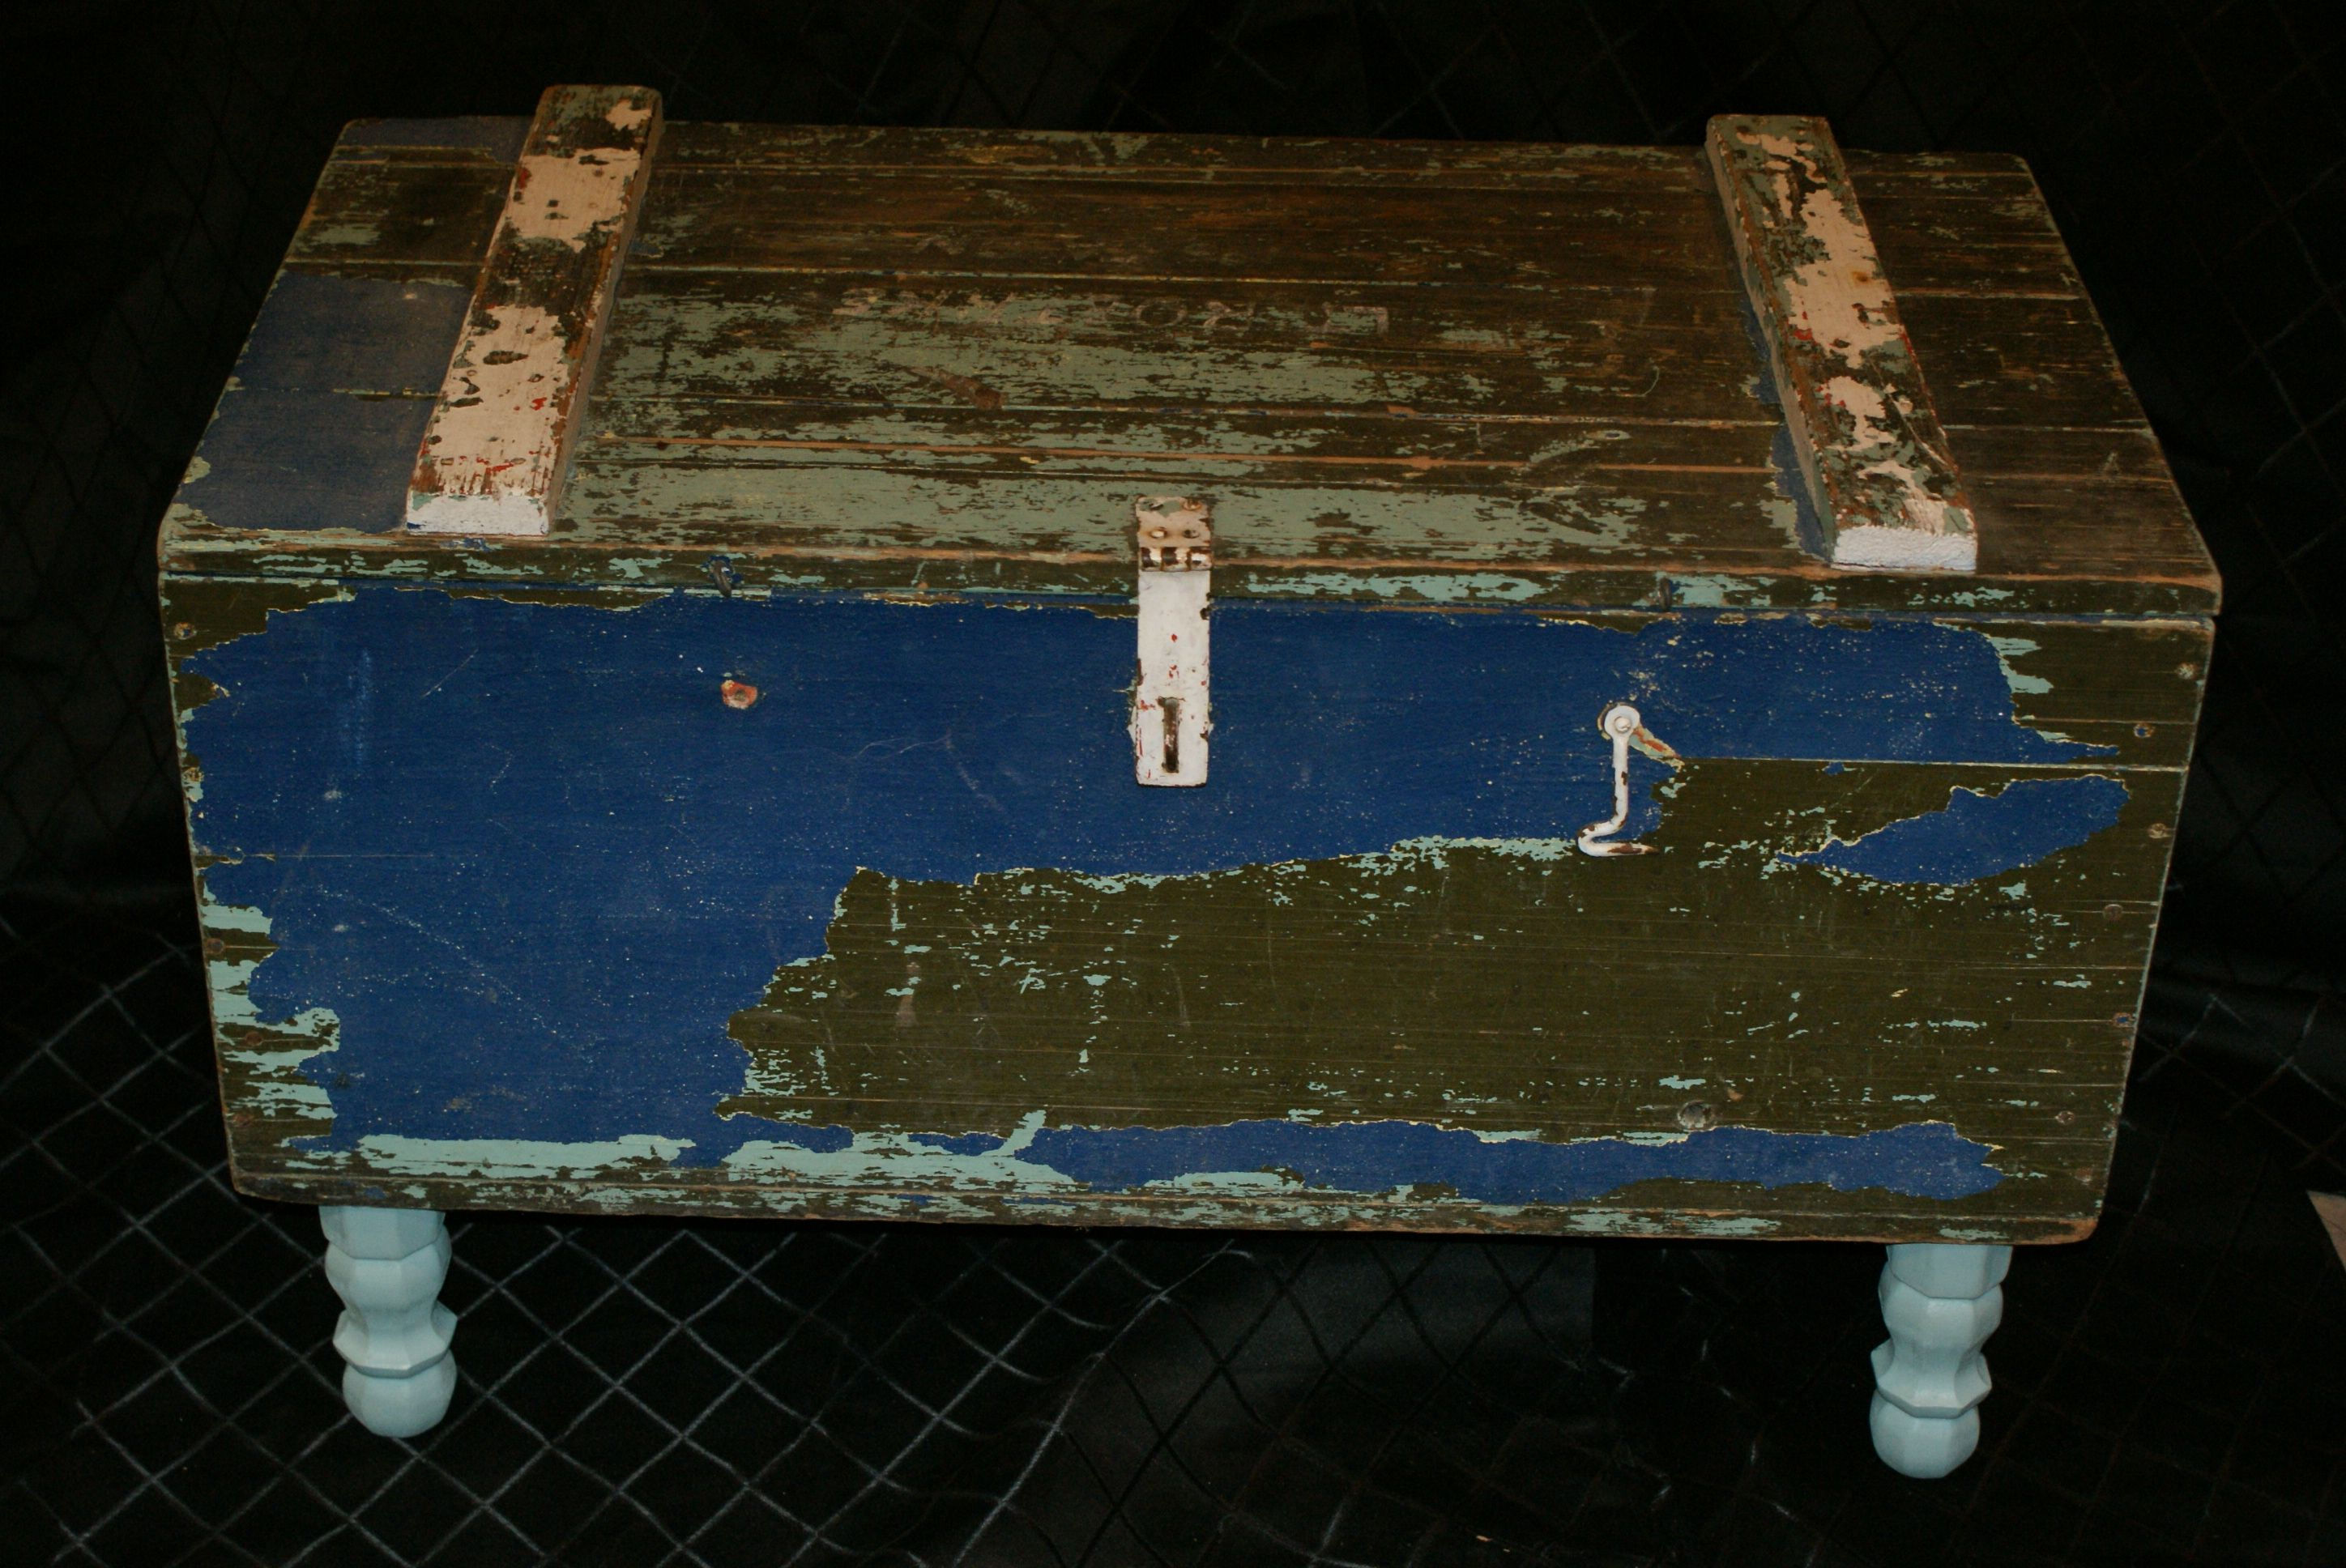 military footlocker turned coffee table. currently for sale on